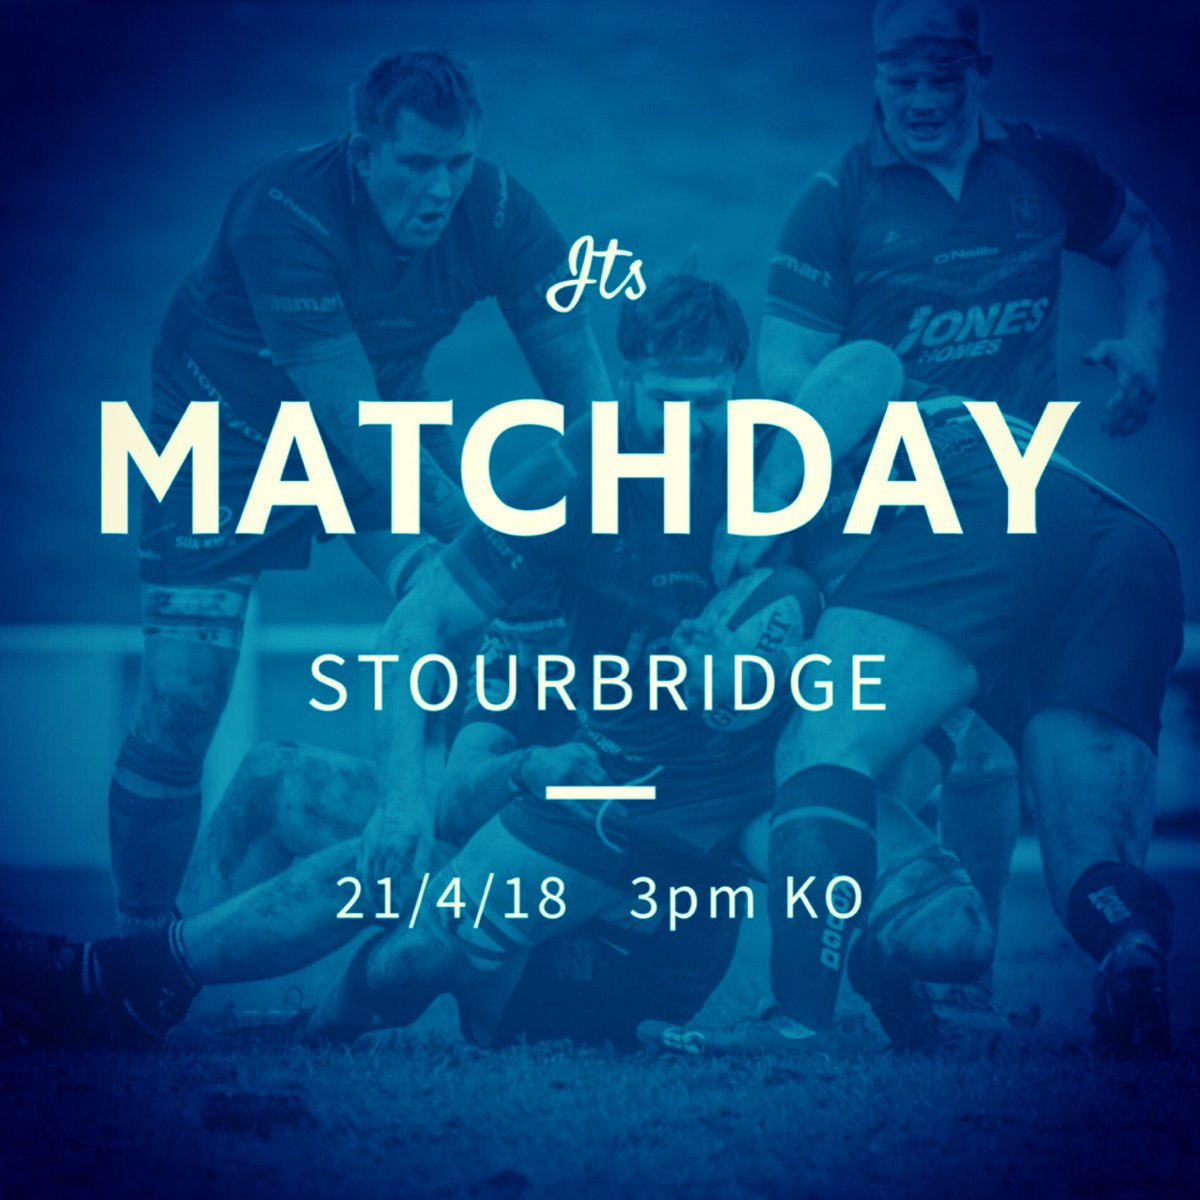 test Twitter Media - It's Matchday!!! @StourbridgeRFC visit Priory Park for what is likely to be the last home game of the season!!#macclesfield #cheshirerugby #backingmacc https://t.co/RNCKNvdbCt